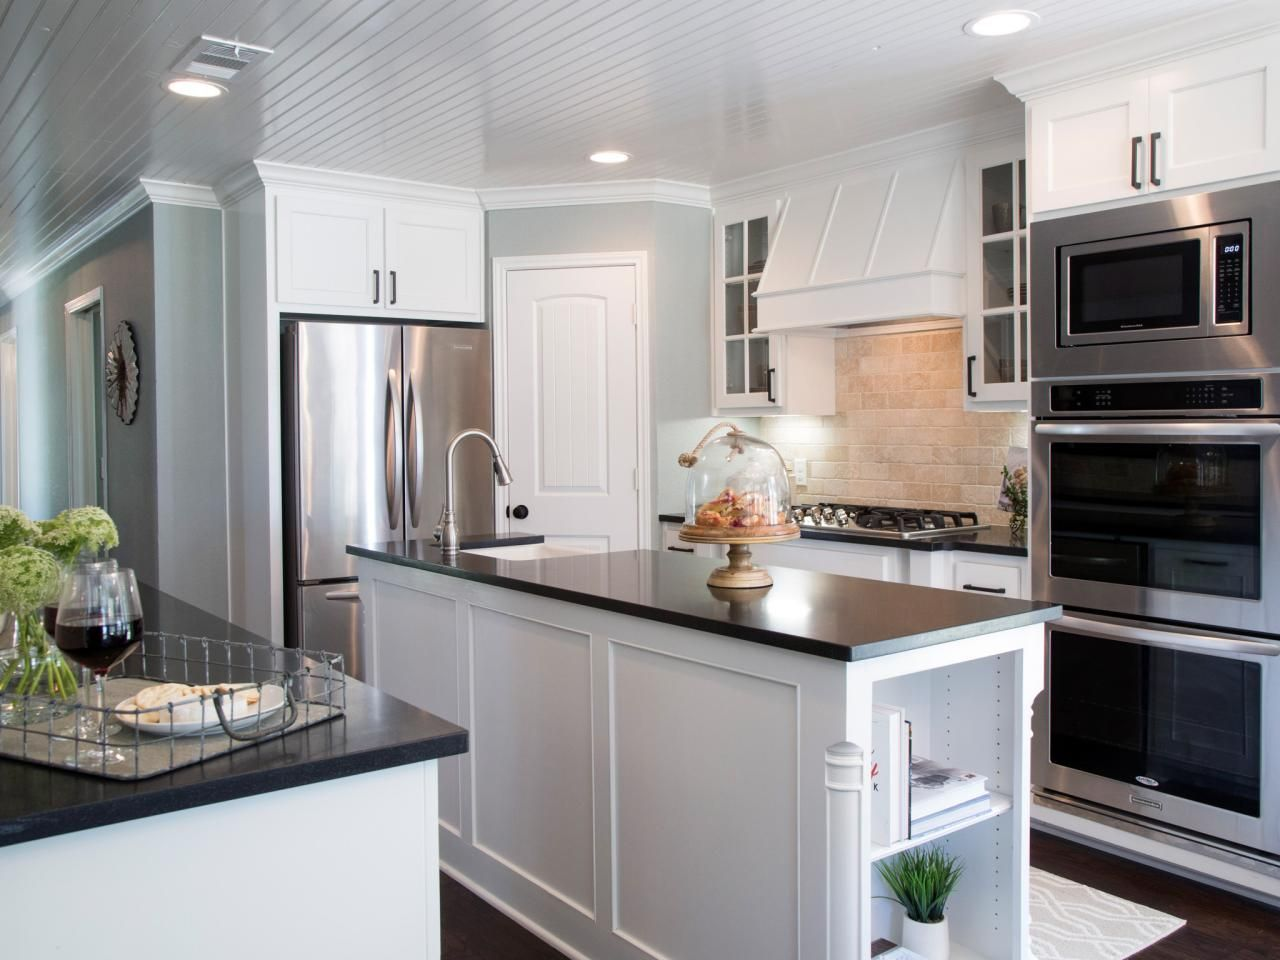 Fixer upper kitchen makeovers - Kitchen Makeover Ideas From Fixer Upper Hgtv S Fixer Upper With Chip And Joanna Gaines